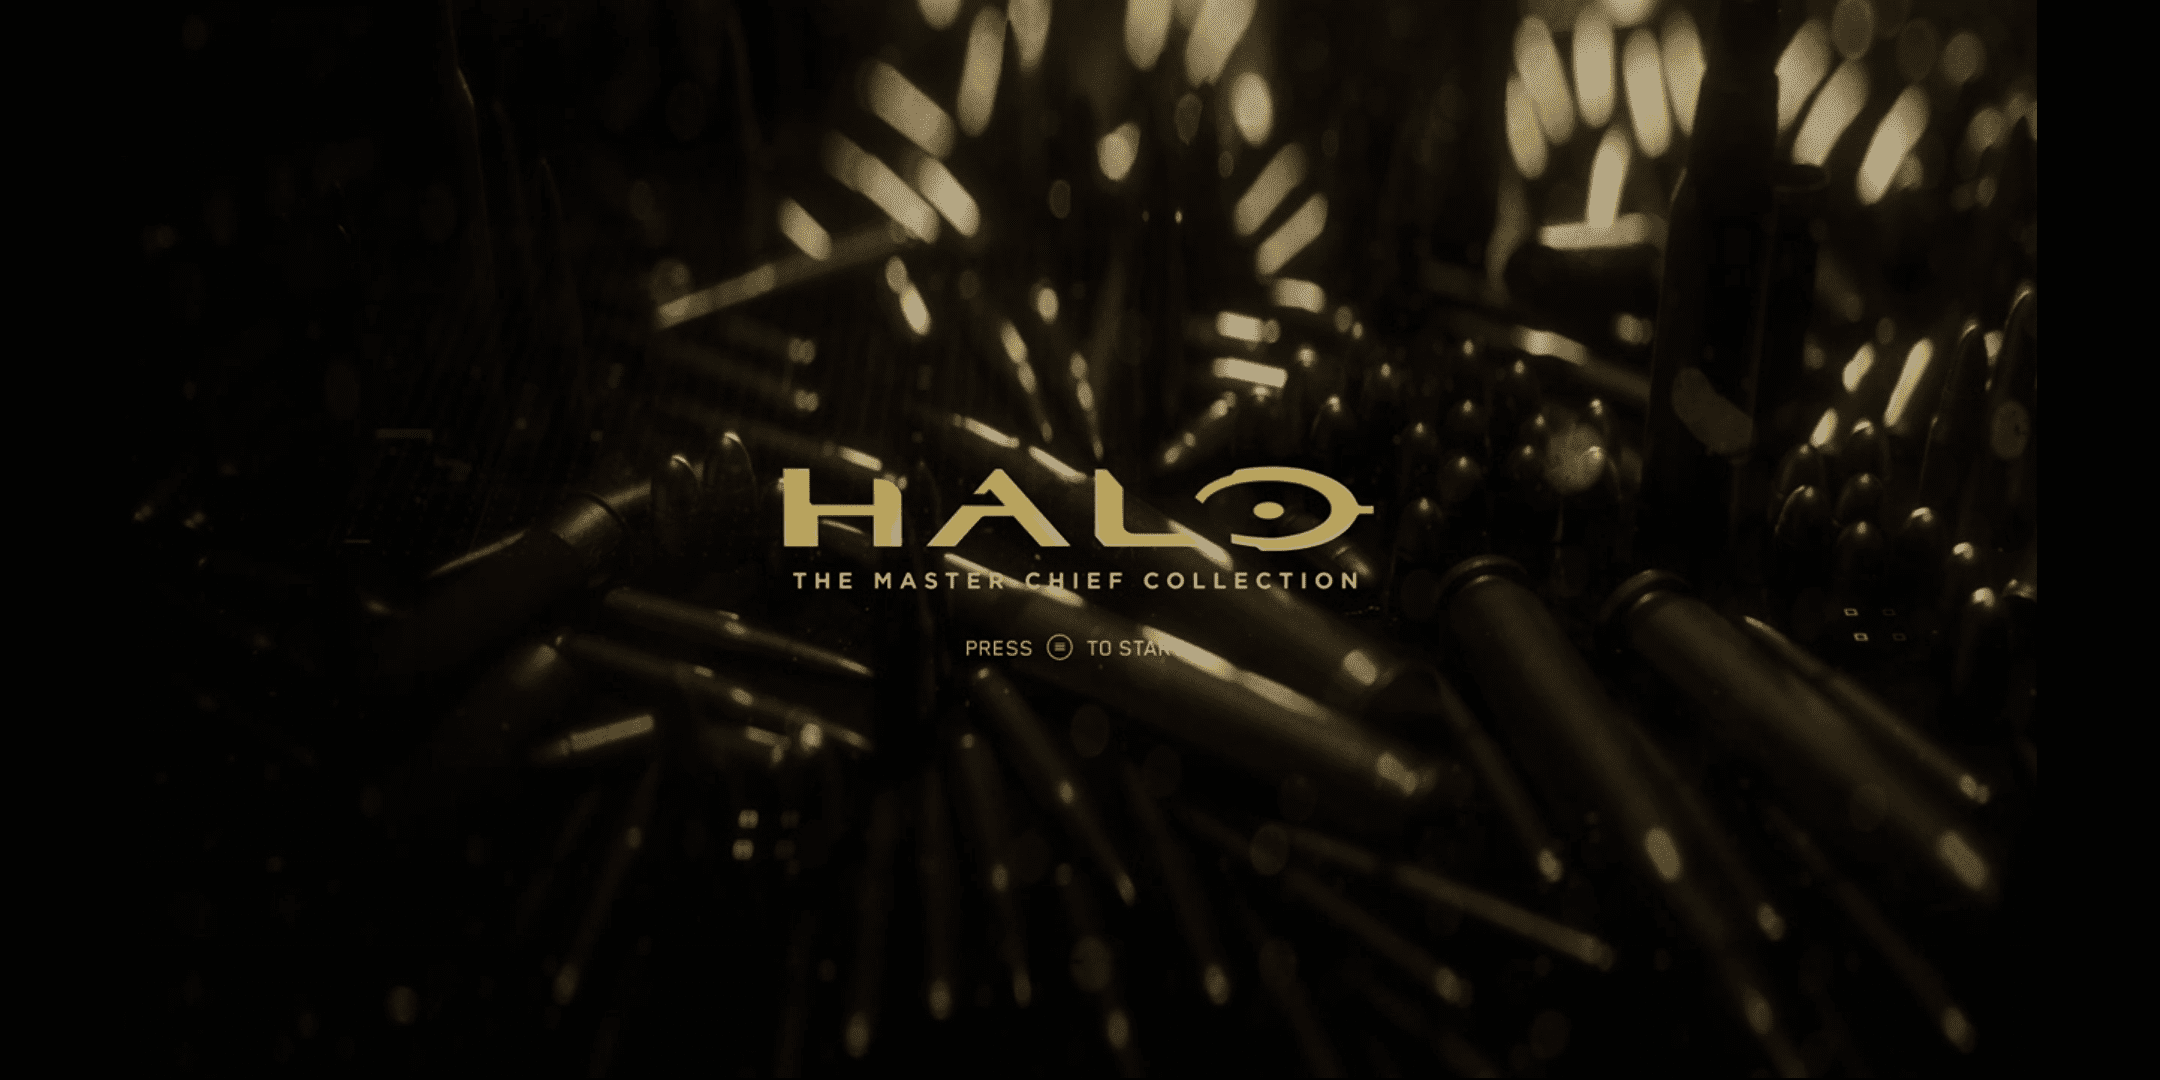 Master Chief Collection streamed to a phone.